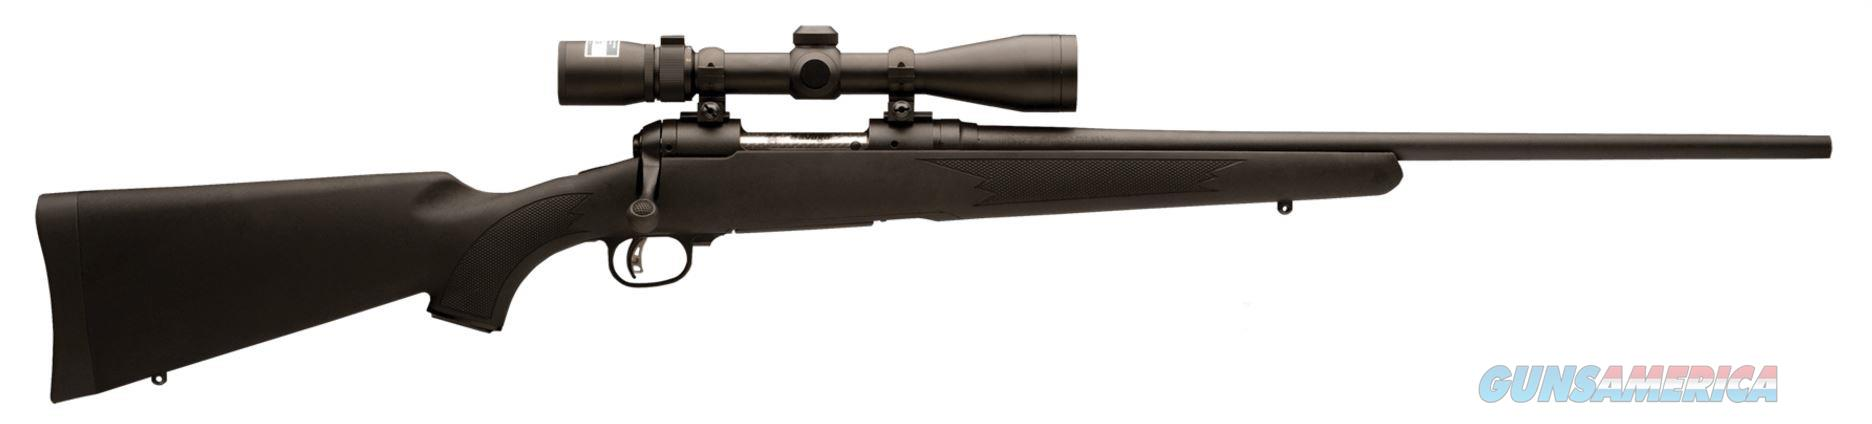 "Savage 11/111 Trophy Hunter XP 6.5 Creedmoor 22"" 4+1 with Scope - New in Box  Guns > Rifles > Savage Rifles > 11/111"